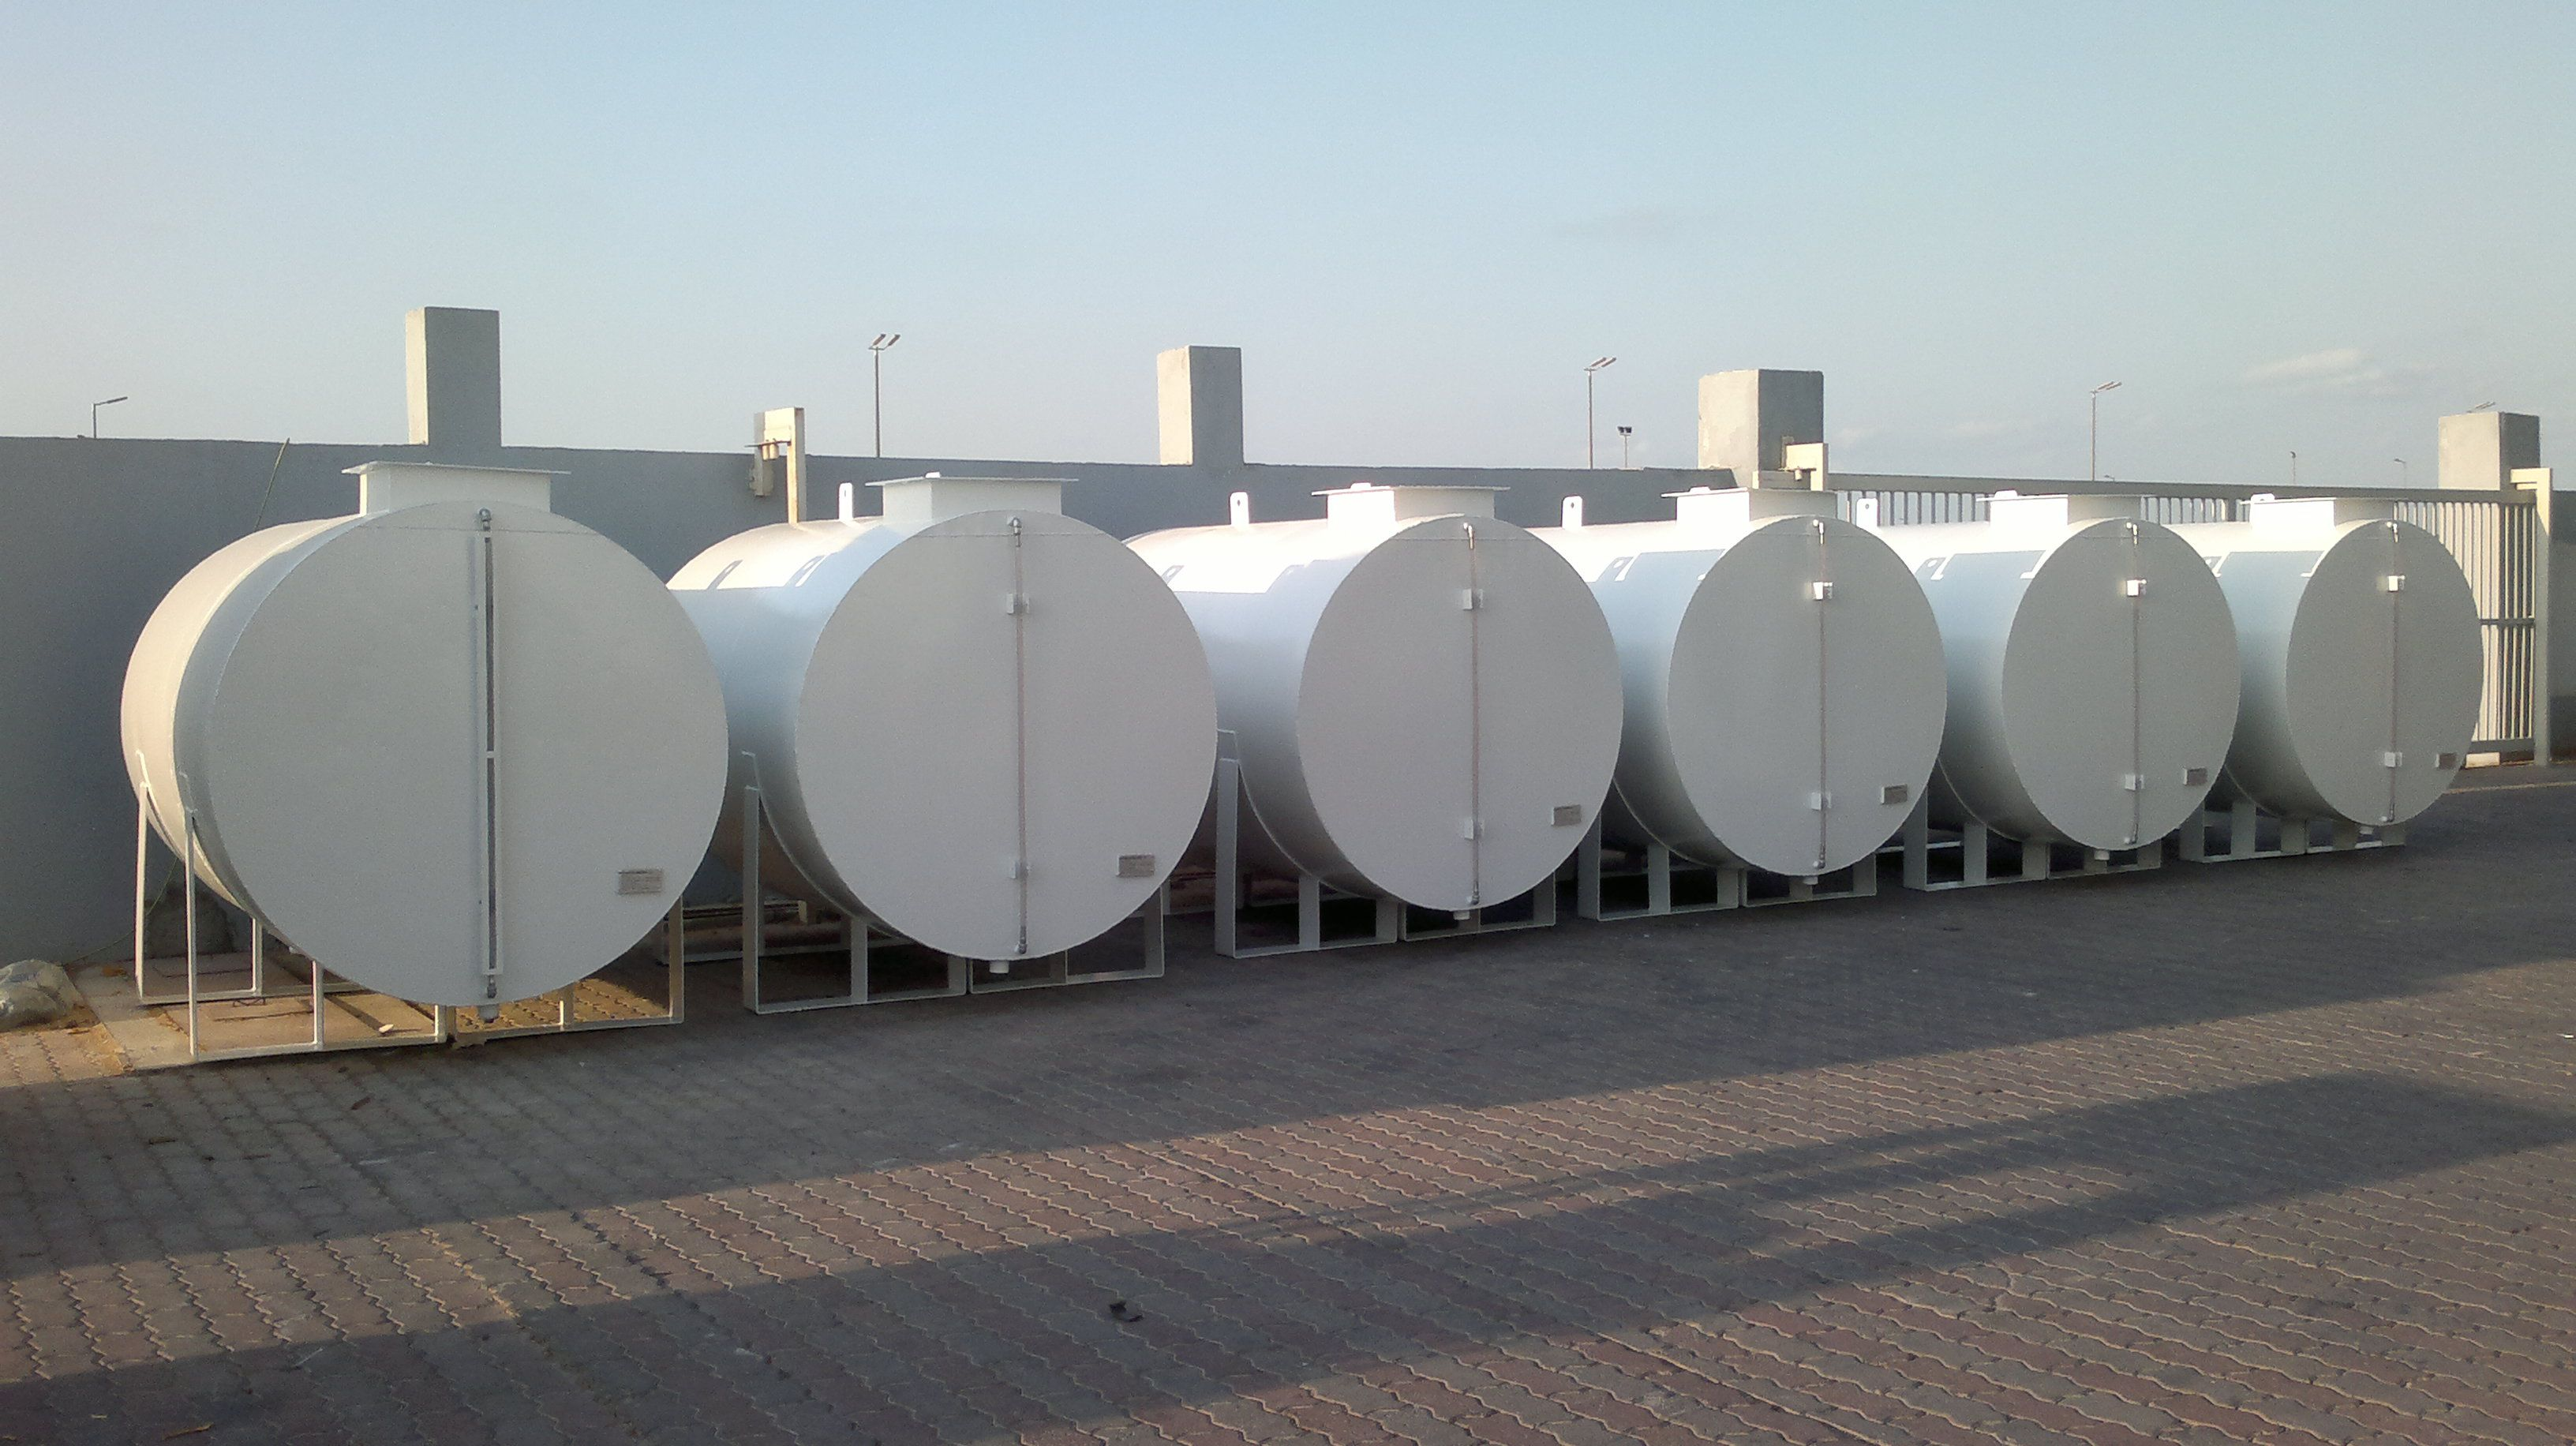 Dieselstoragetank Manufacturer In Uae Integrated Industries Produces Double Wall Dieseltanks Diesel Oil Storageta Storage Tank Fuel Storage Storage Tanks